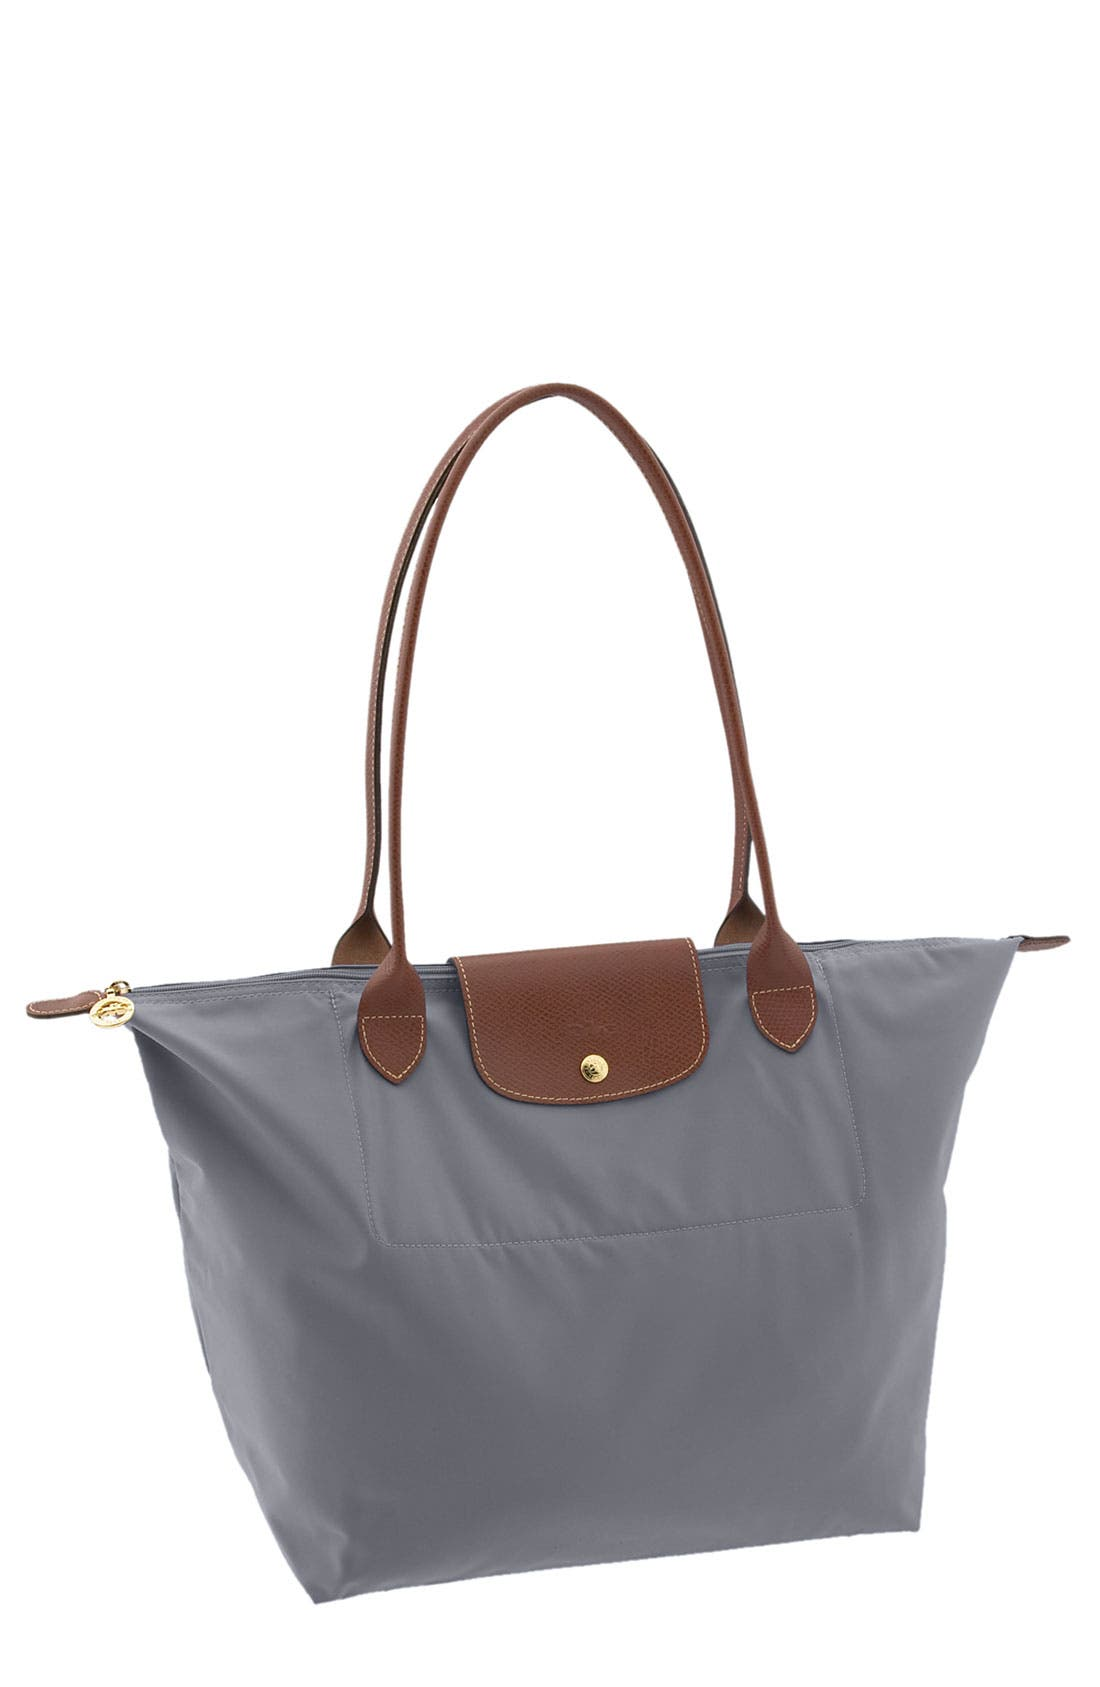 LONGCHAMP 'Le Pliage - Large' Tote Bag, Main, color, 020